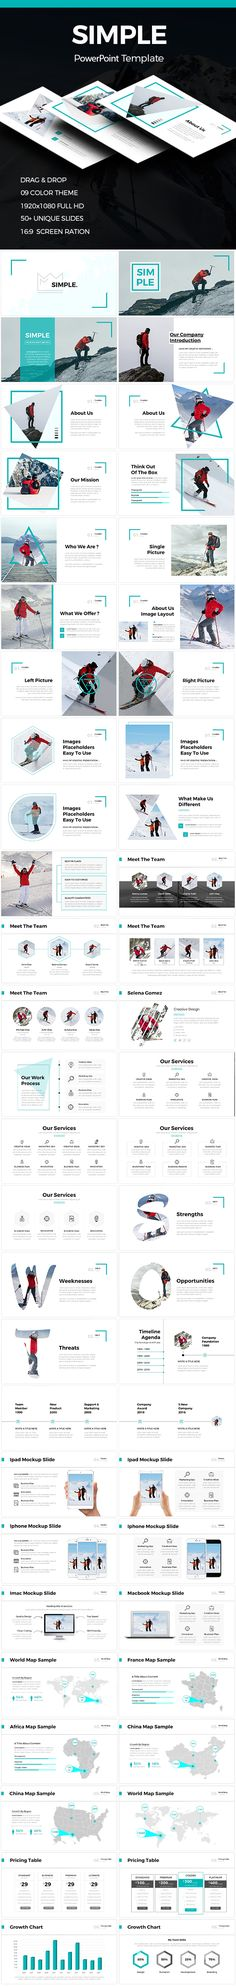 Simple - Clean Powerpoint Template - PowerPoint Templates Presentation Templates